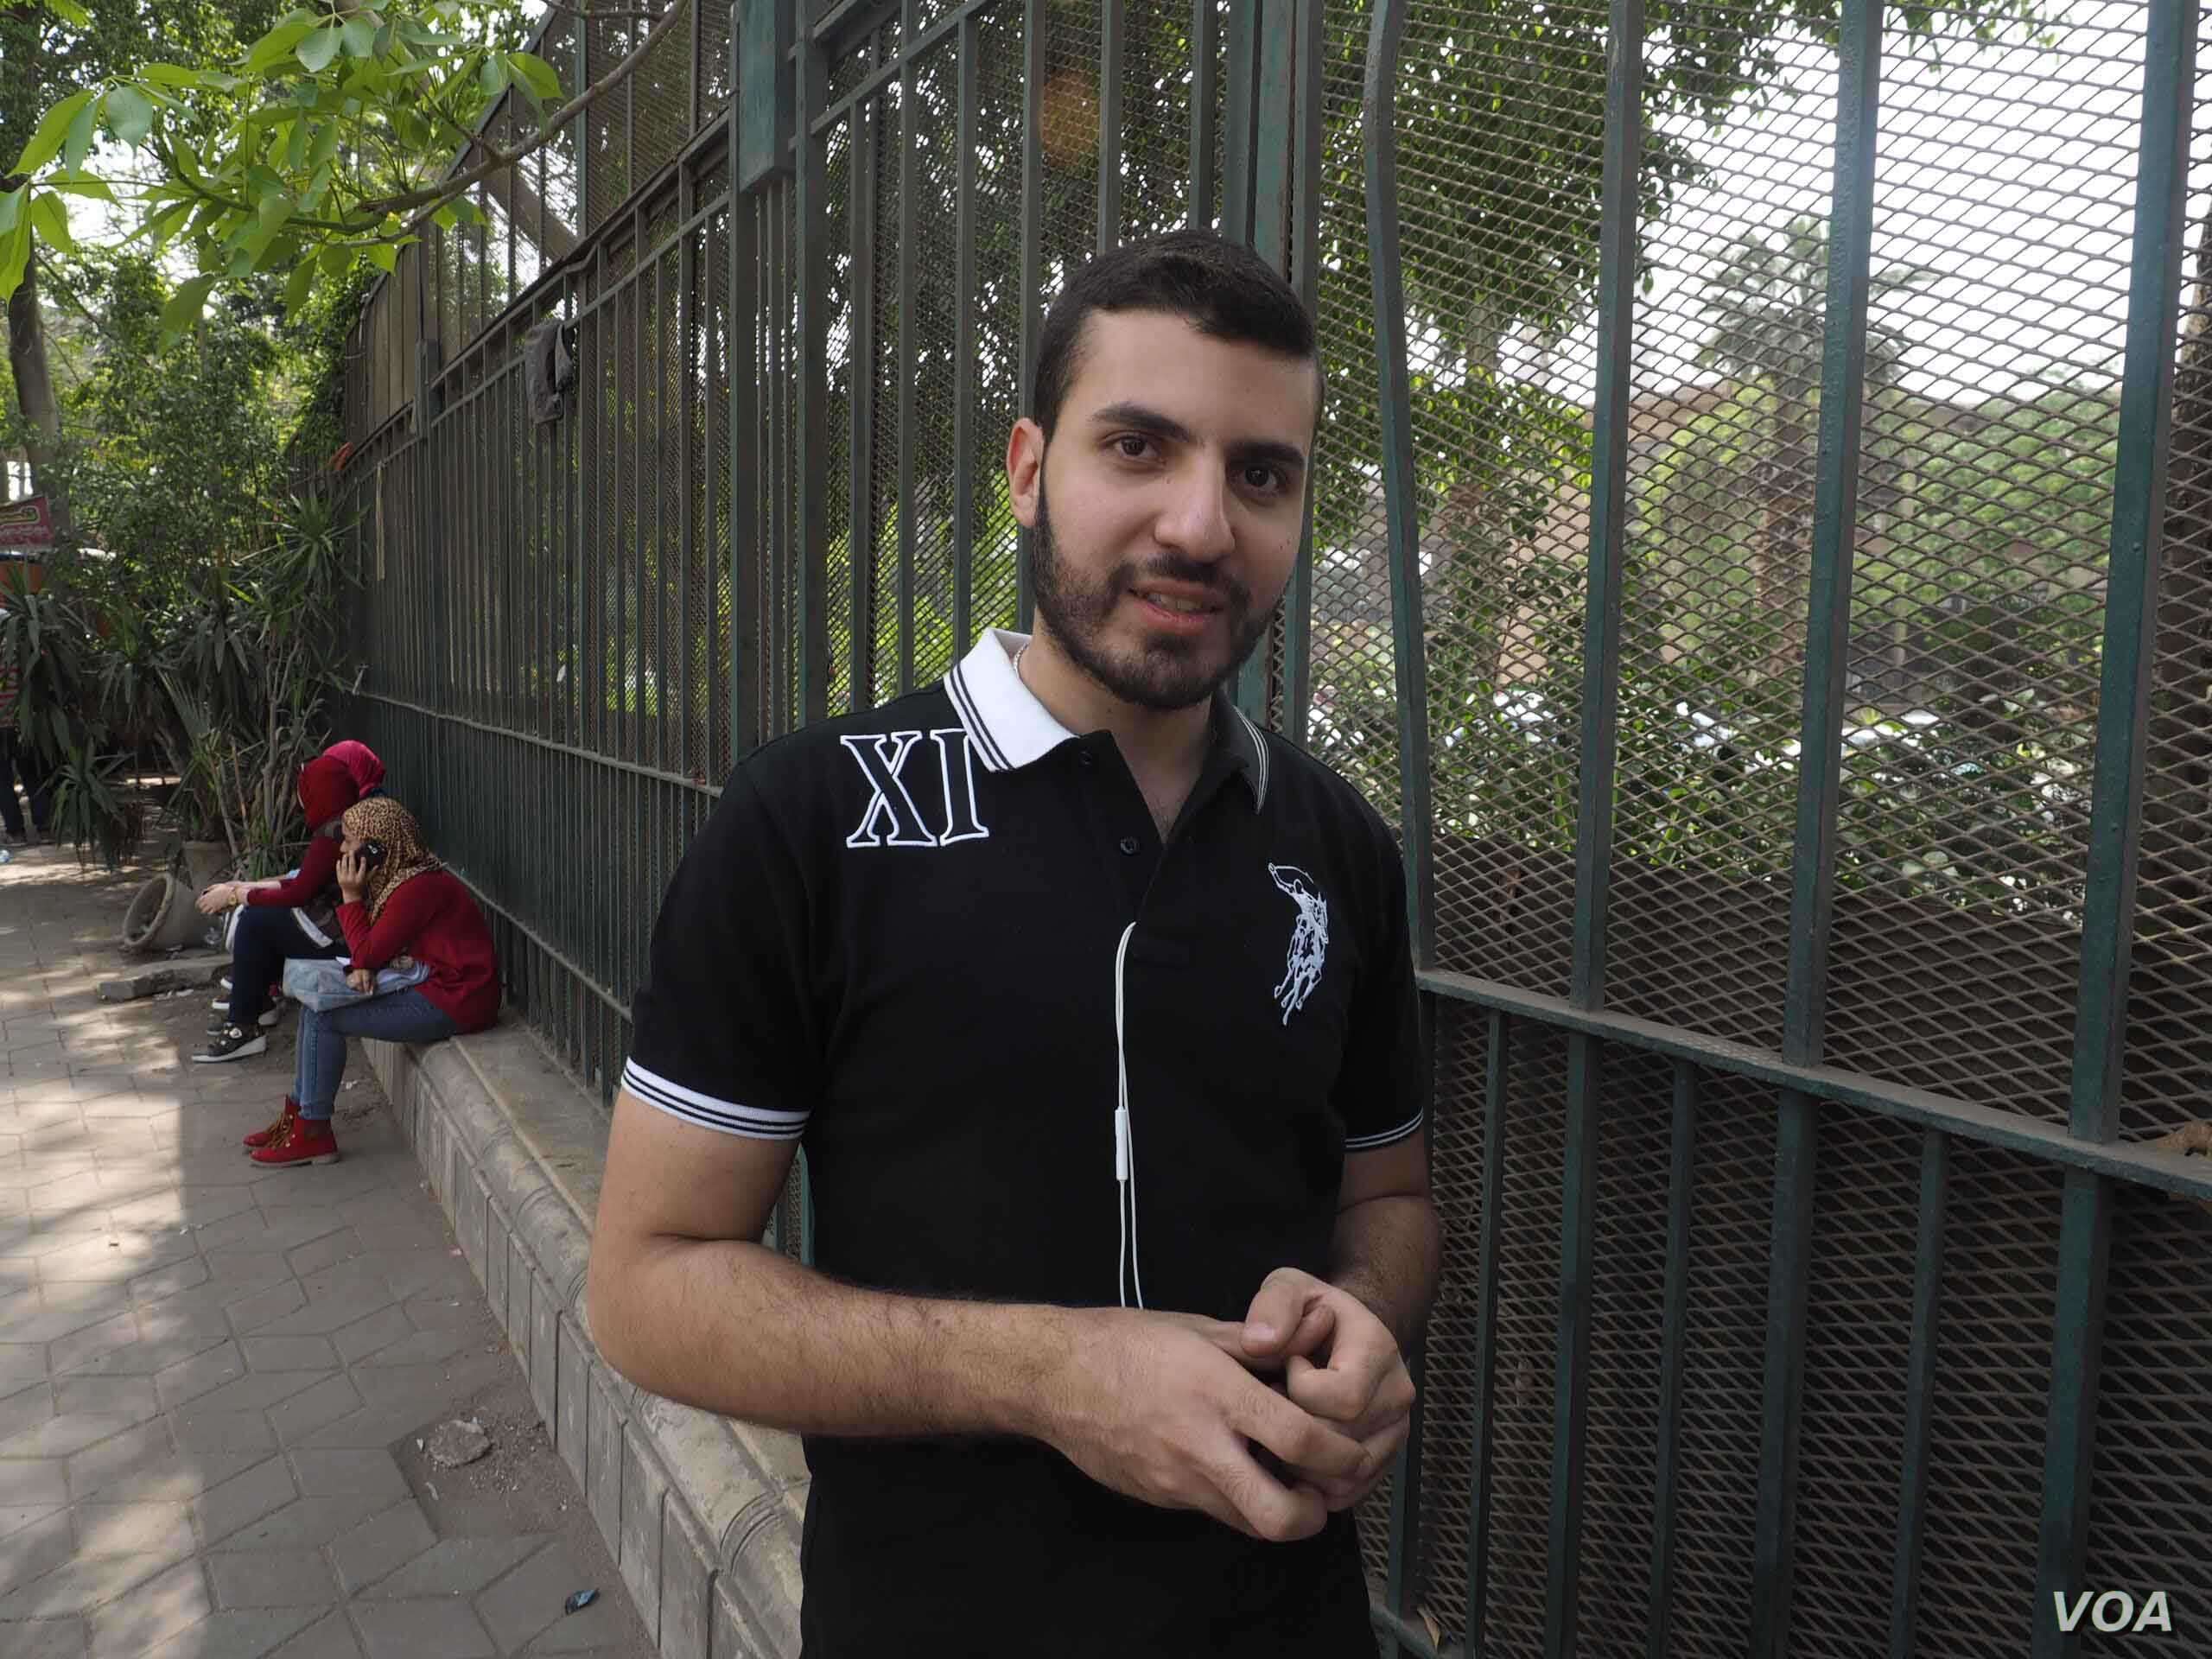 Some young men like Khaled, 22, say government bureaucracy is a big problem in Cairo, April 21, 2016. (H. Elrasam/VOA)